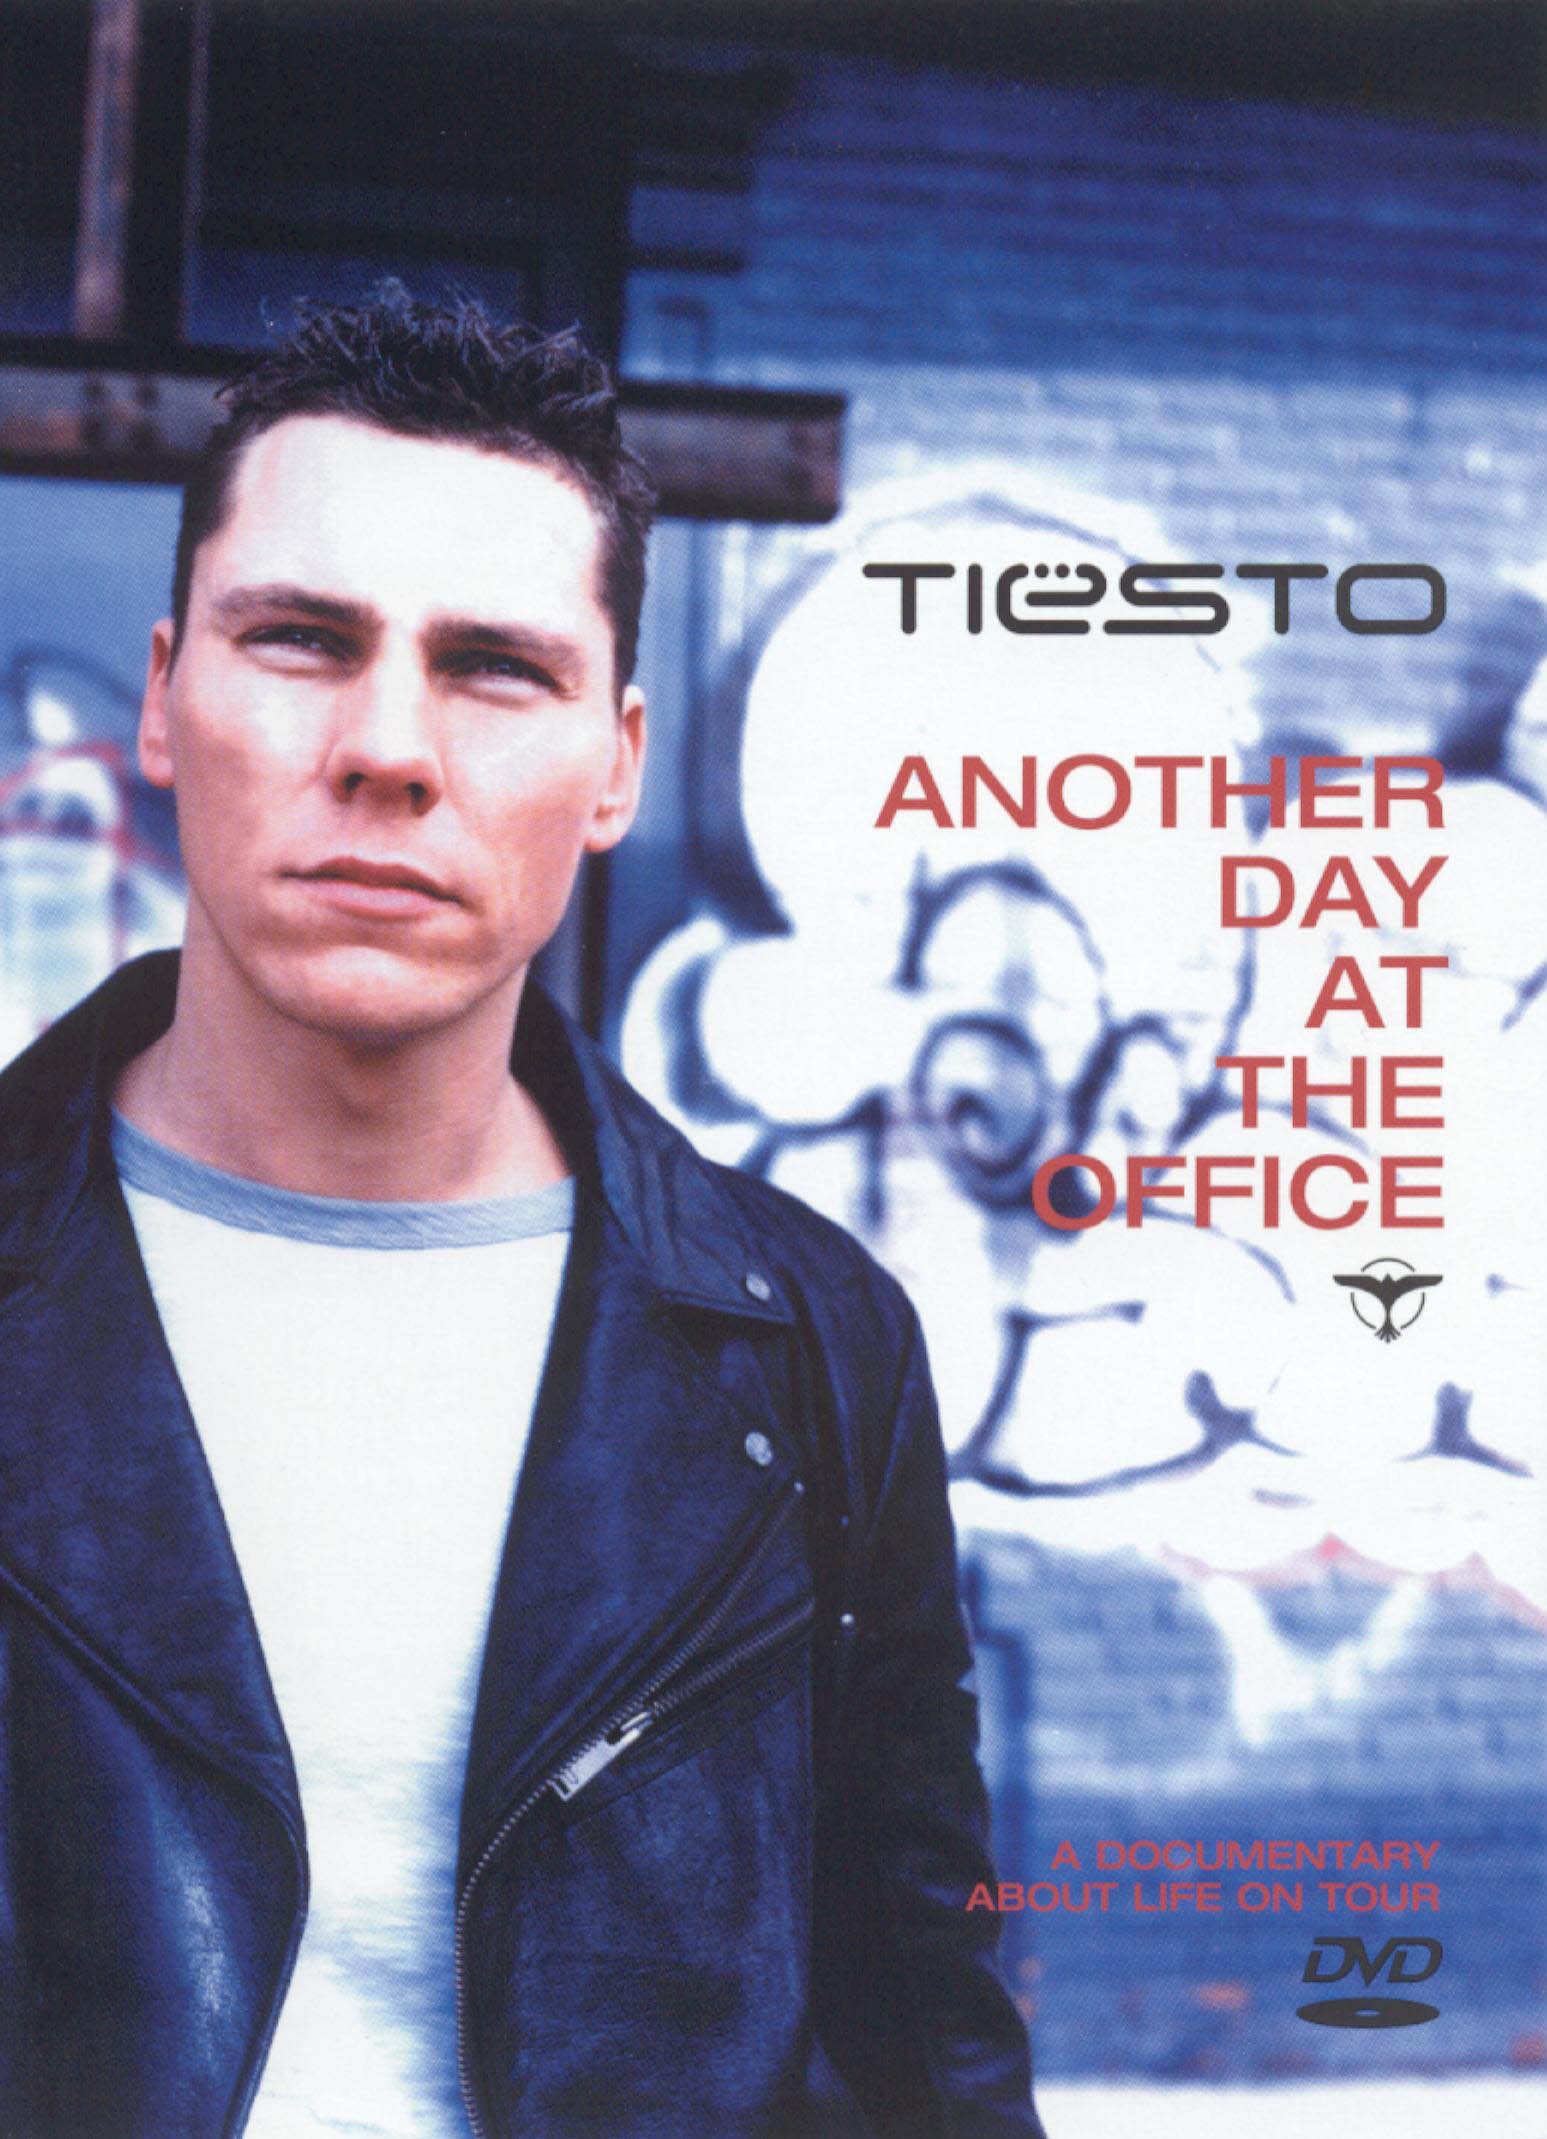 Tiesto: Another Day at the Office